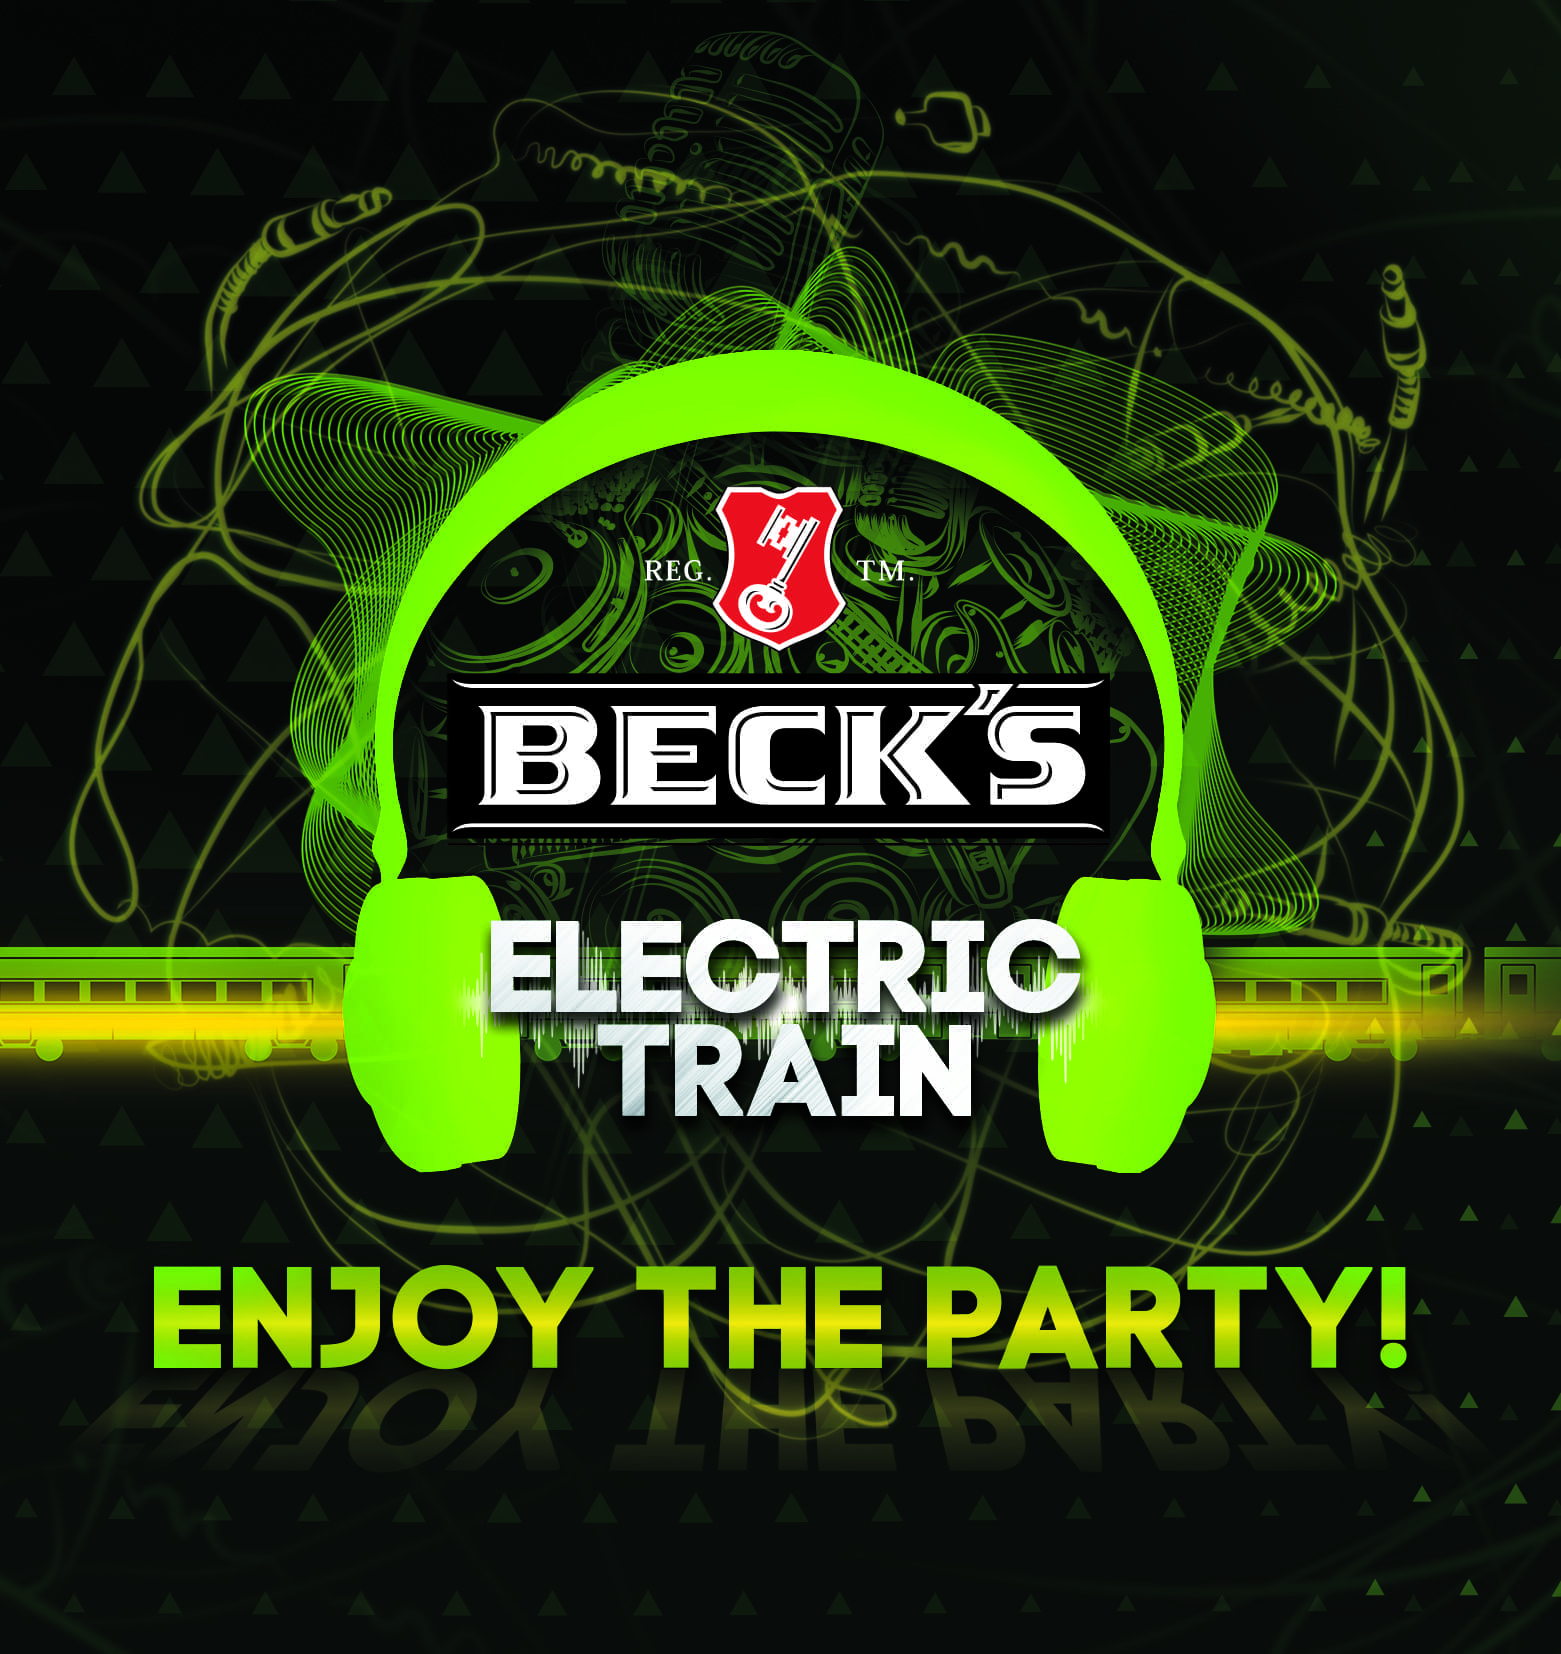 Beck's Electric Train